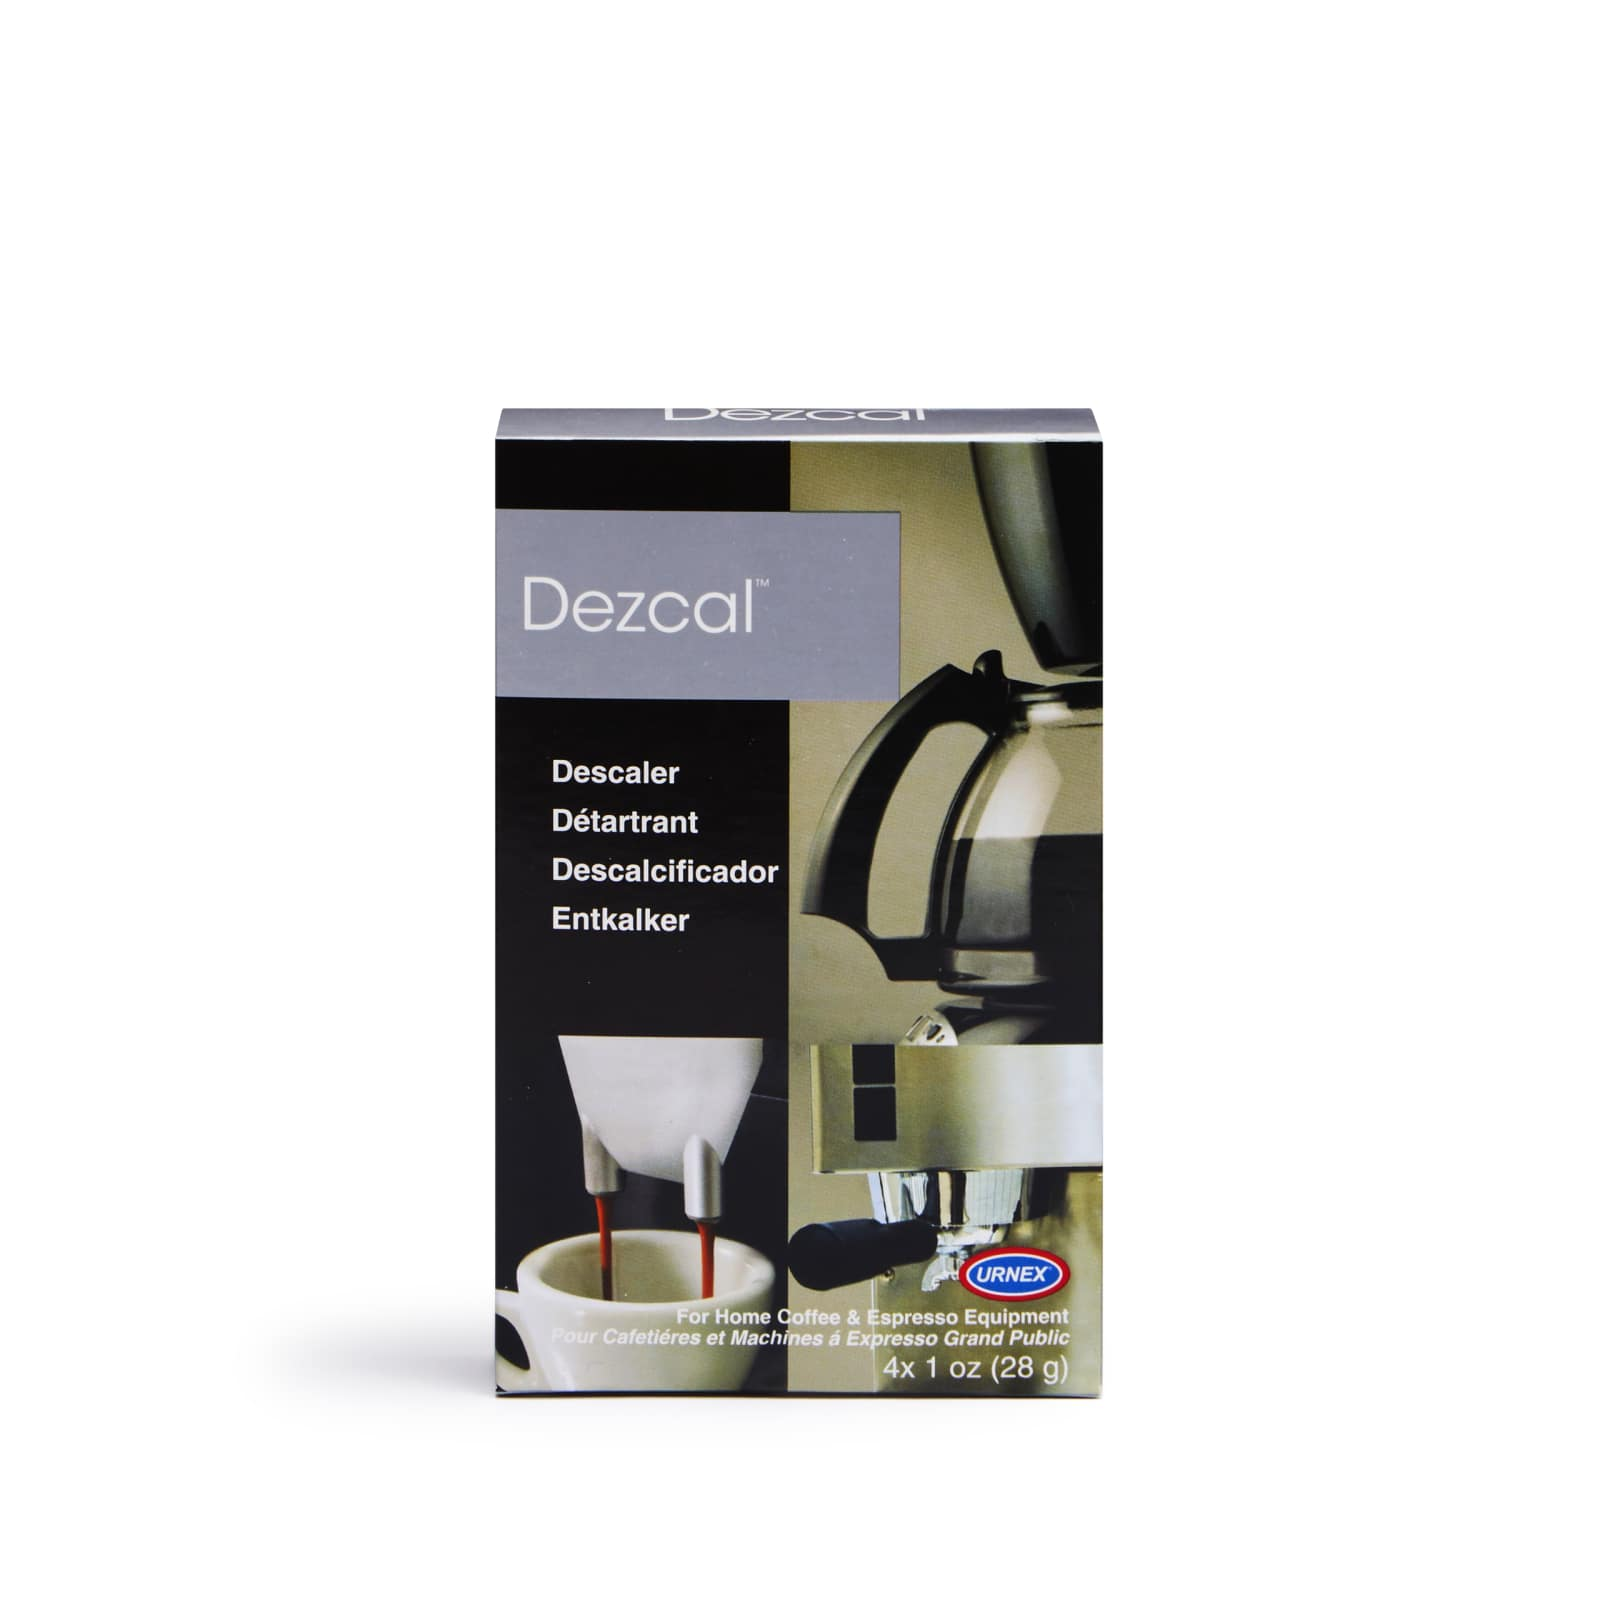 Dezcal Coffee Maker Cleaner